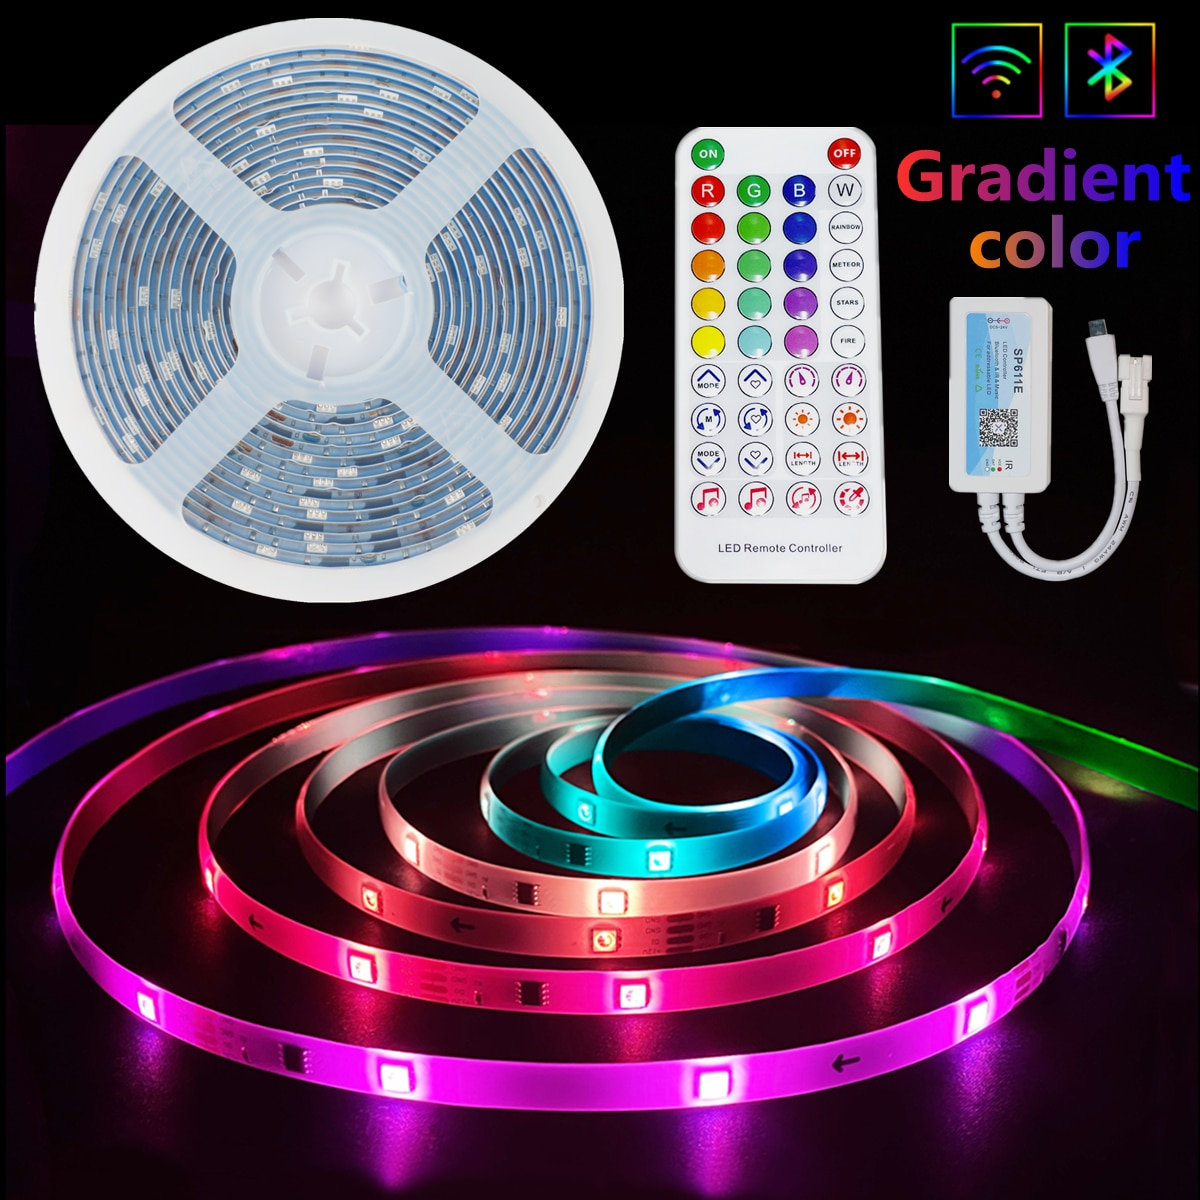 LED Strip Lights RGB 5050 Waterproof Lamp Flexible Tape Diode Bluetooth Dream color luces led 5M 10M